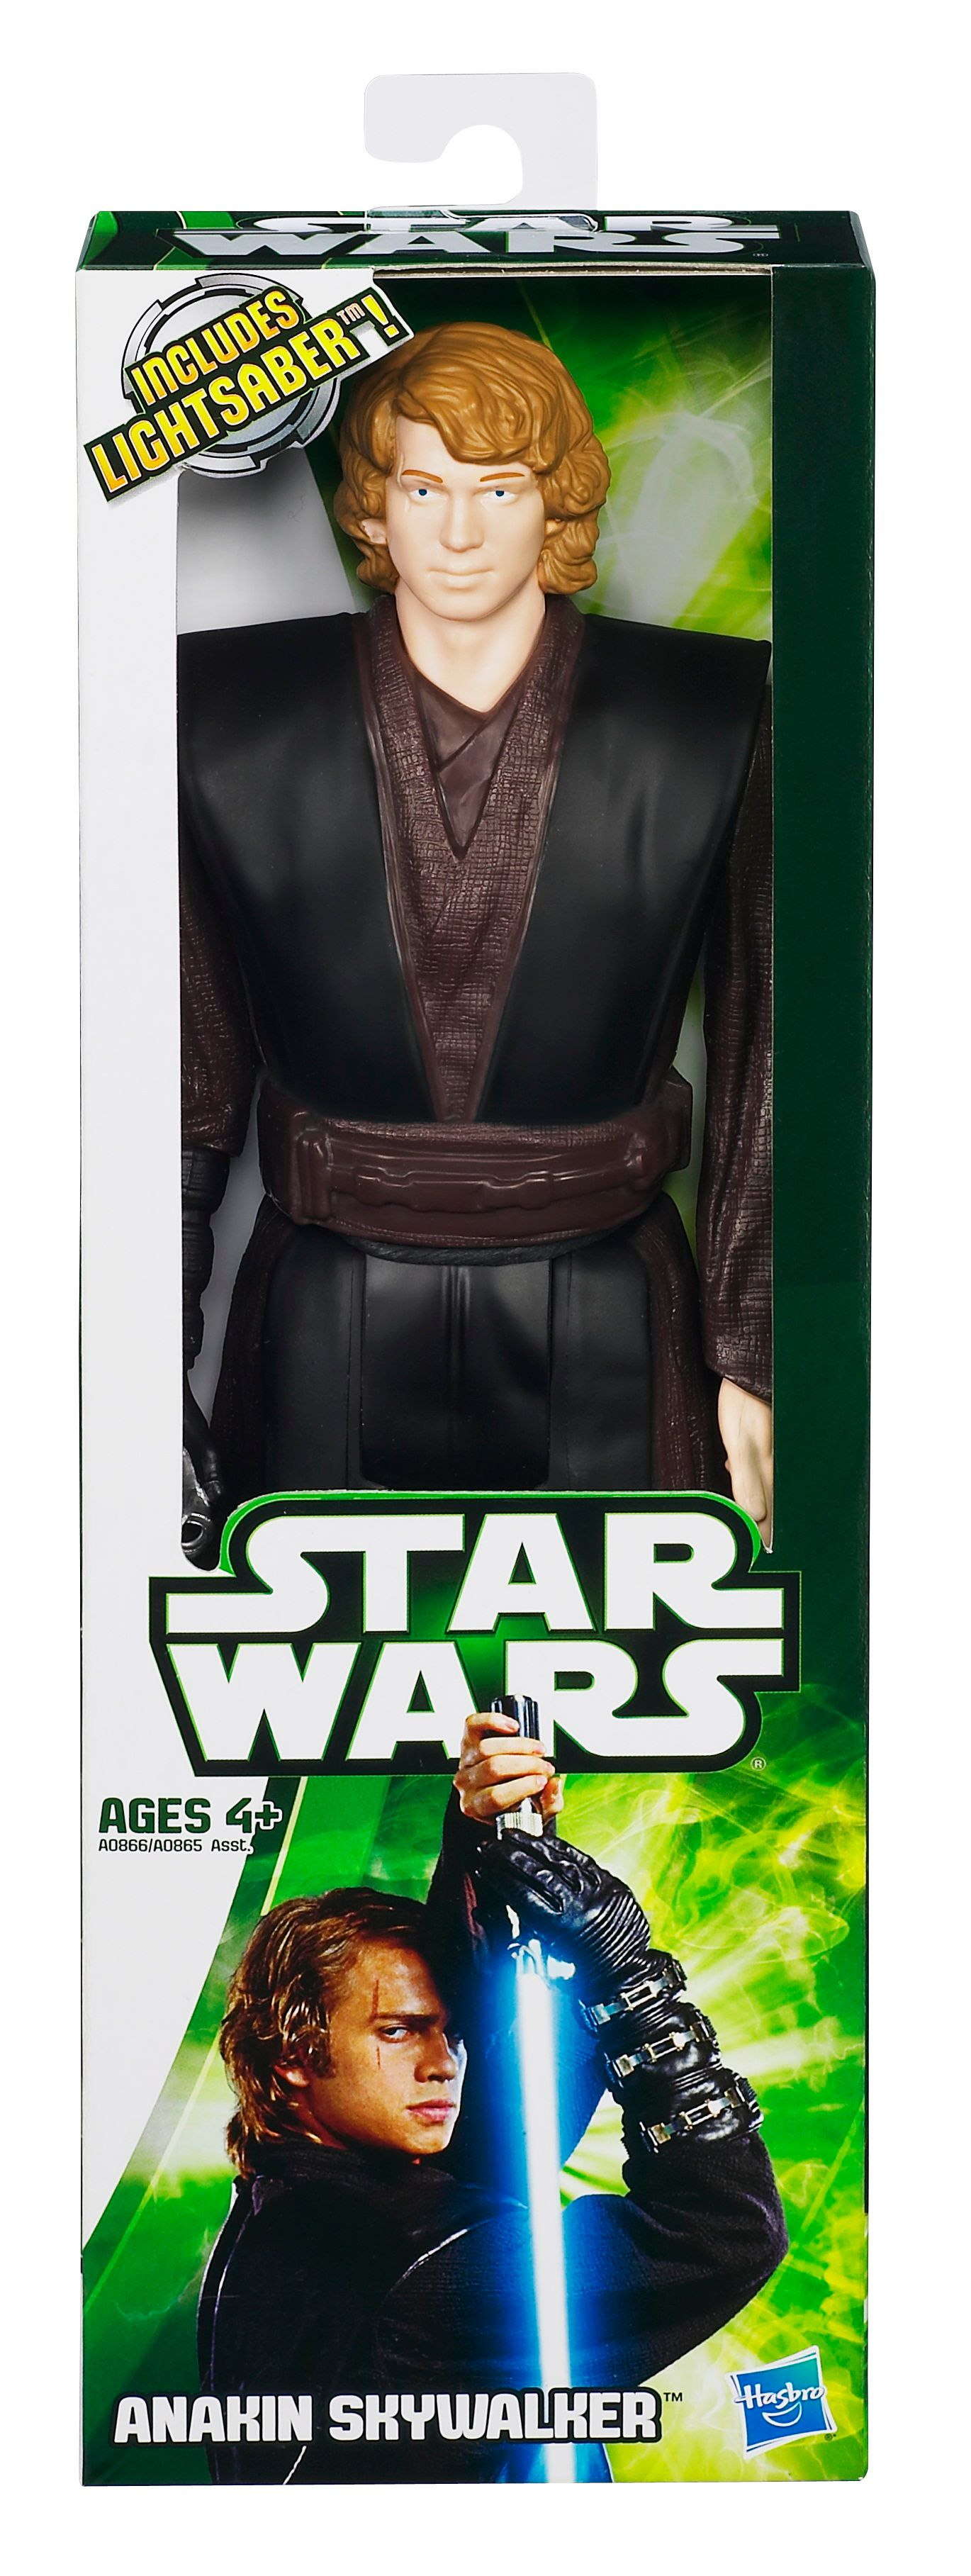 Star Wars 12 Anakin Skywalker